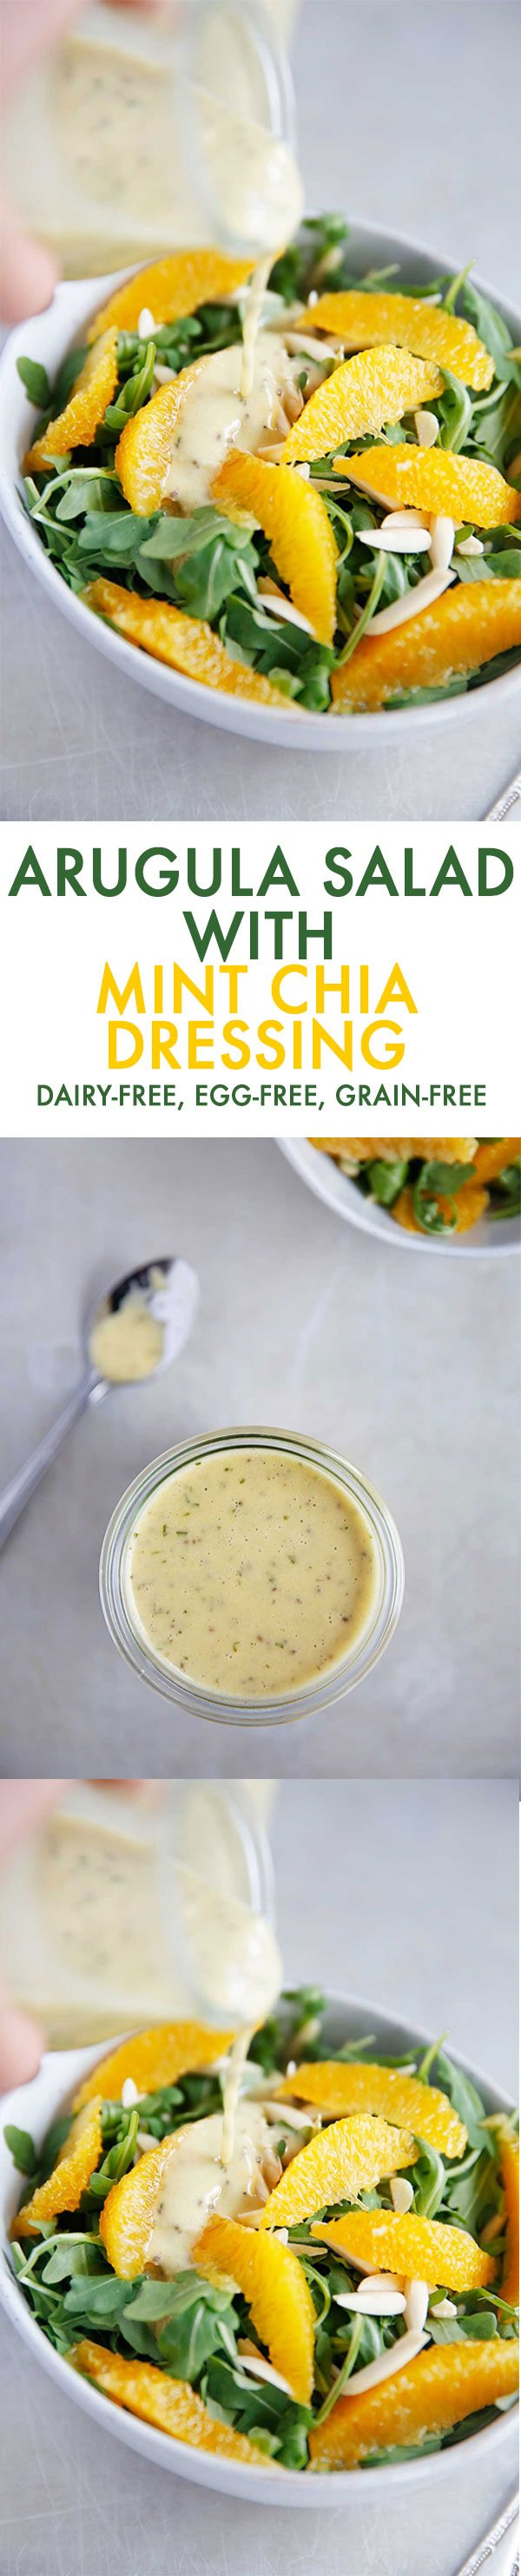 Arugula Salad with Mint Chia Dressing {Grain-free, dairy-free, egg-free} | Lexi's Clean Kitchen